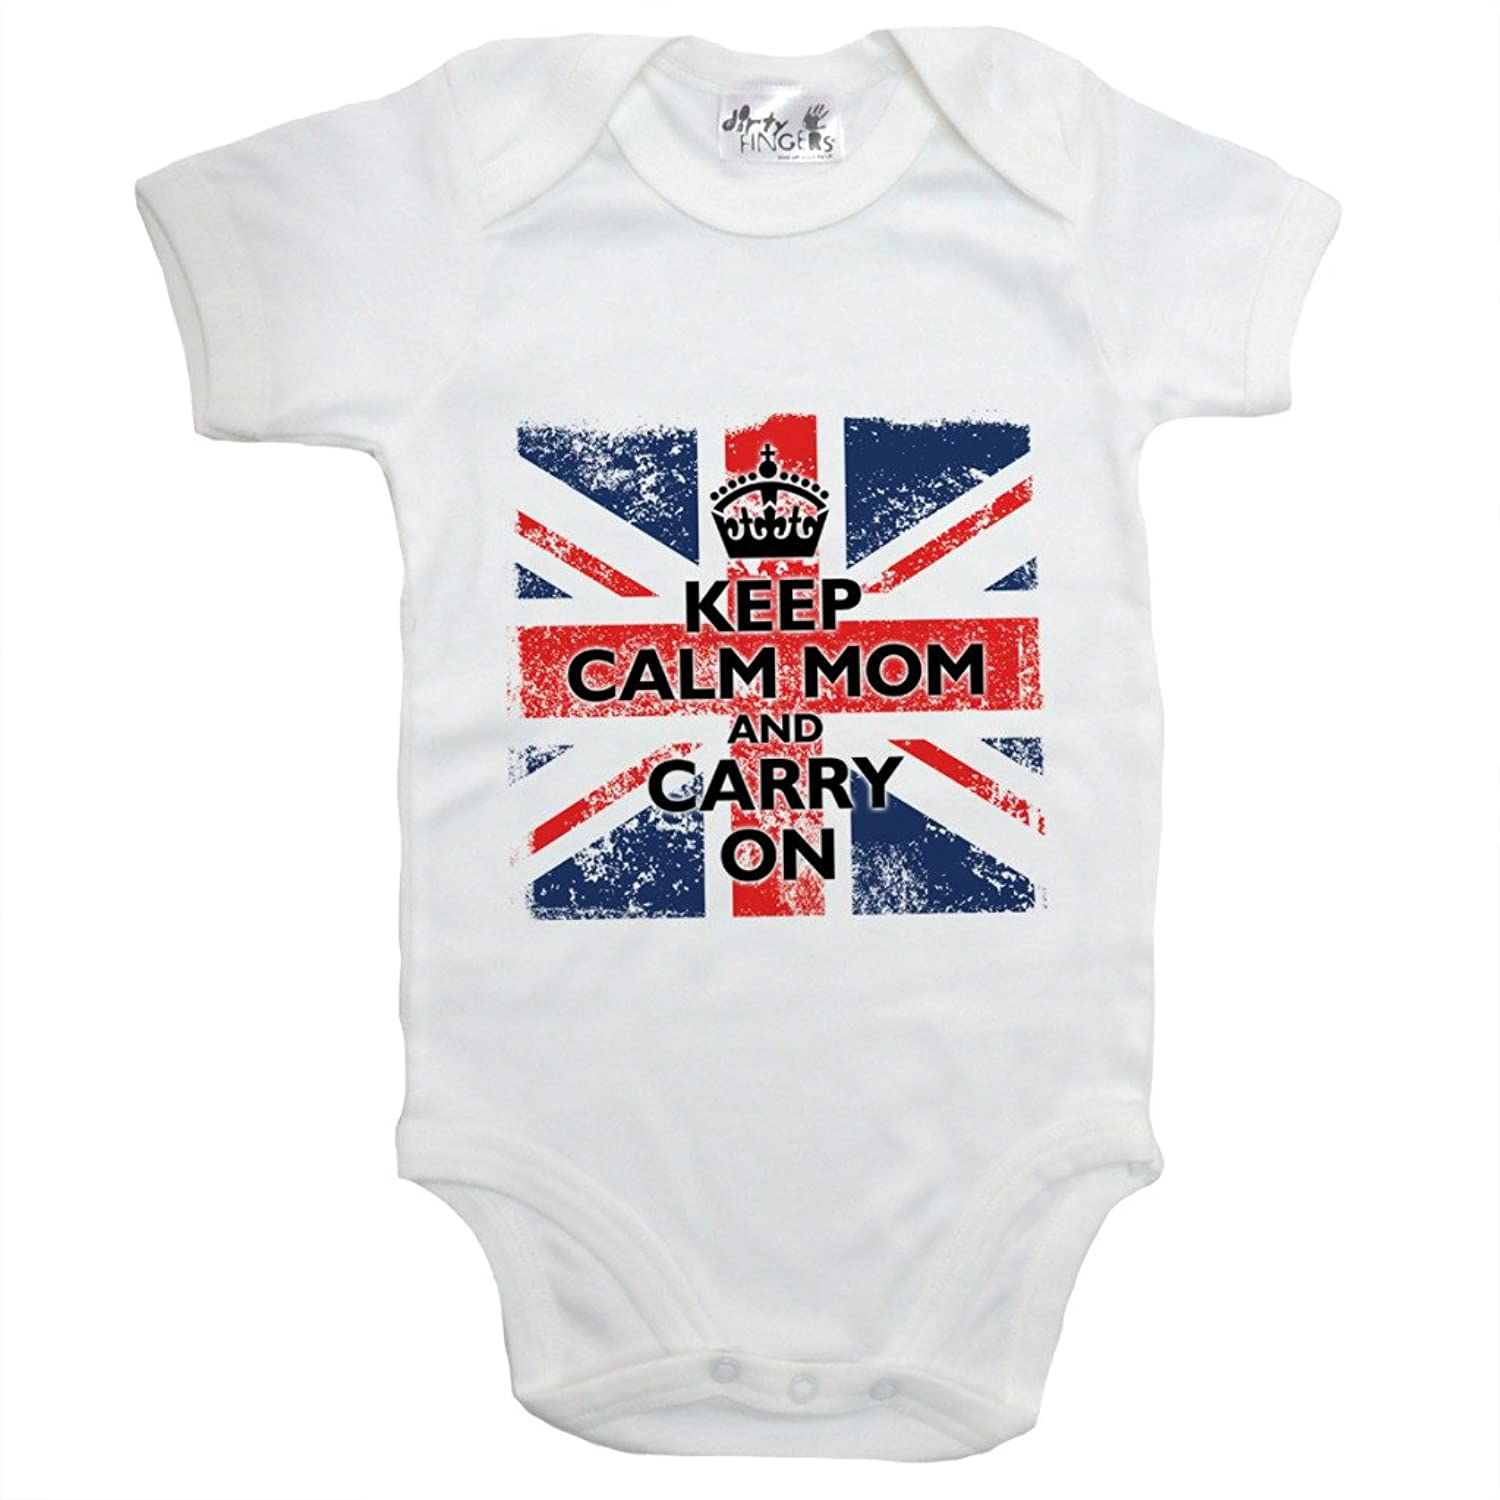 Amazon Dirty Fingers Keep Calm Mom and Carry British flag